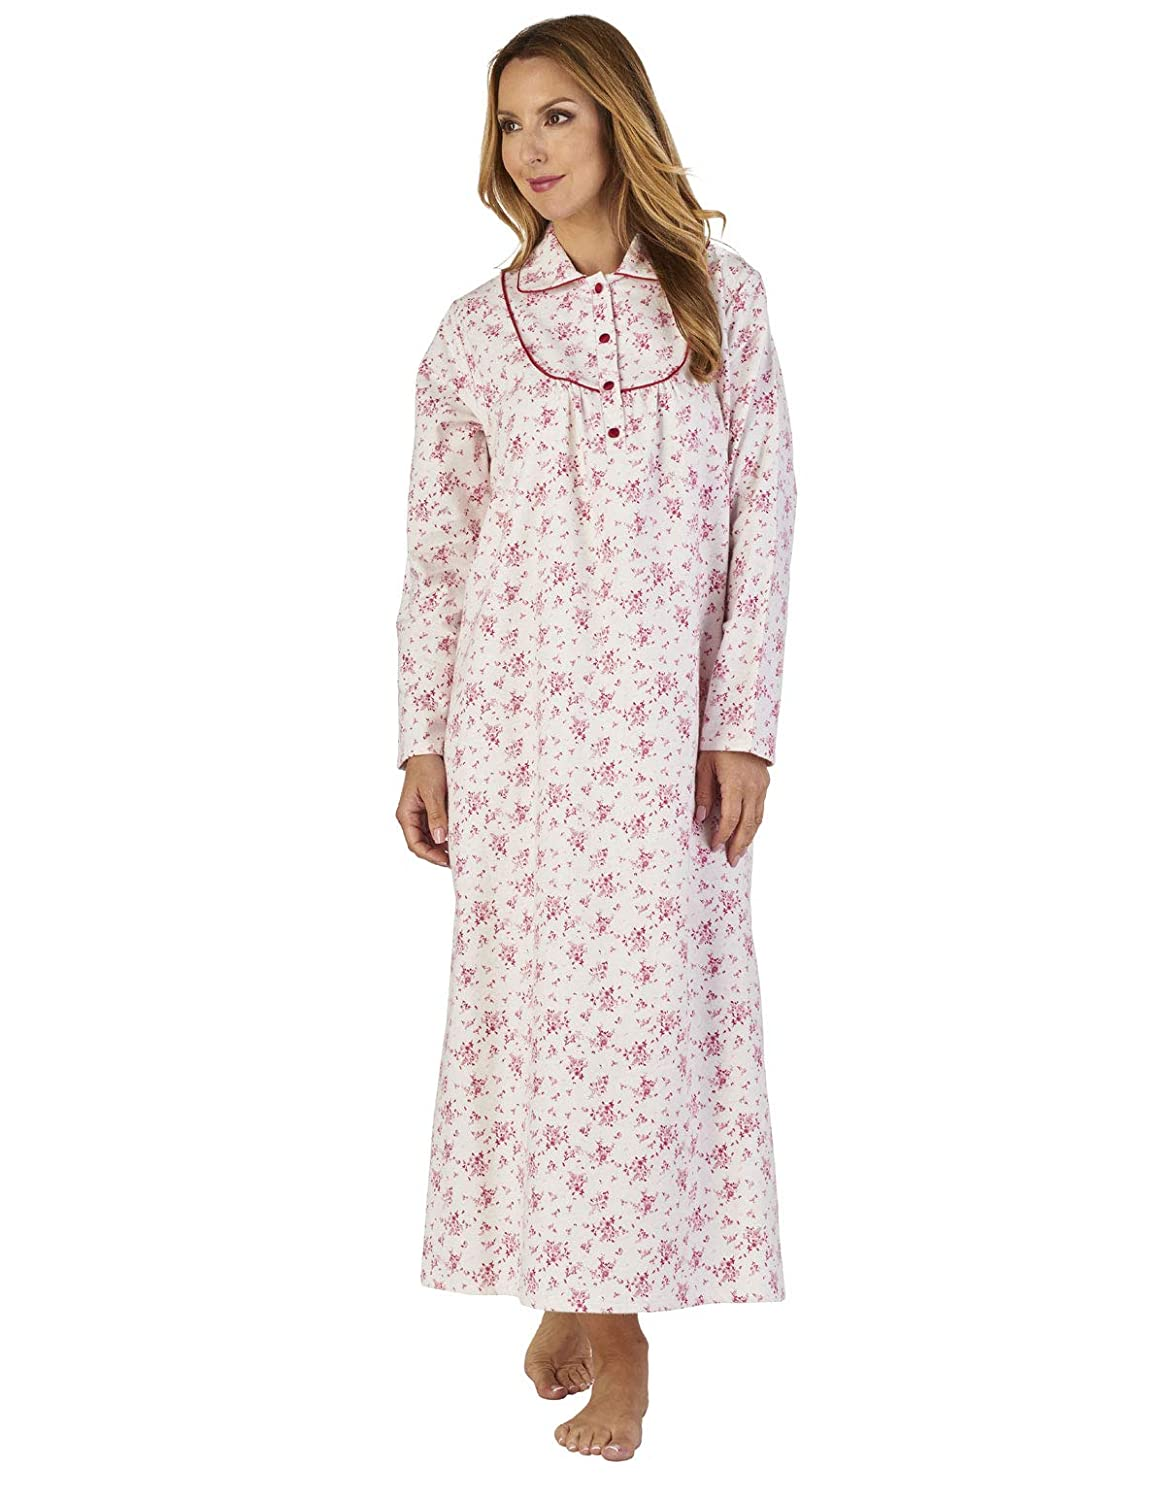 Slenderella ND2212 Women's Luxury Flannel Floral Loungewear Nightdress